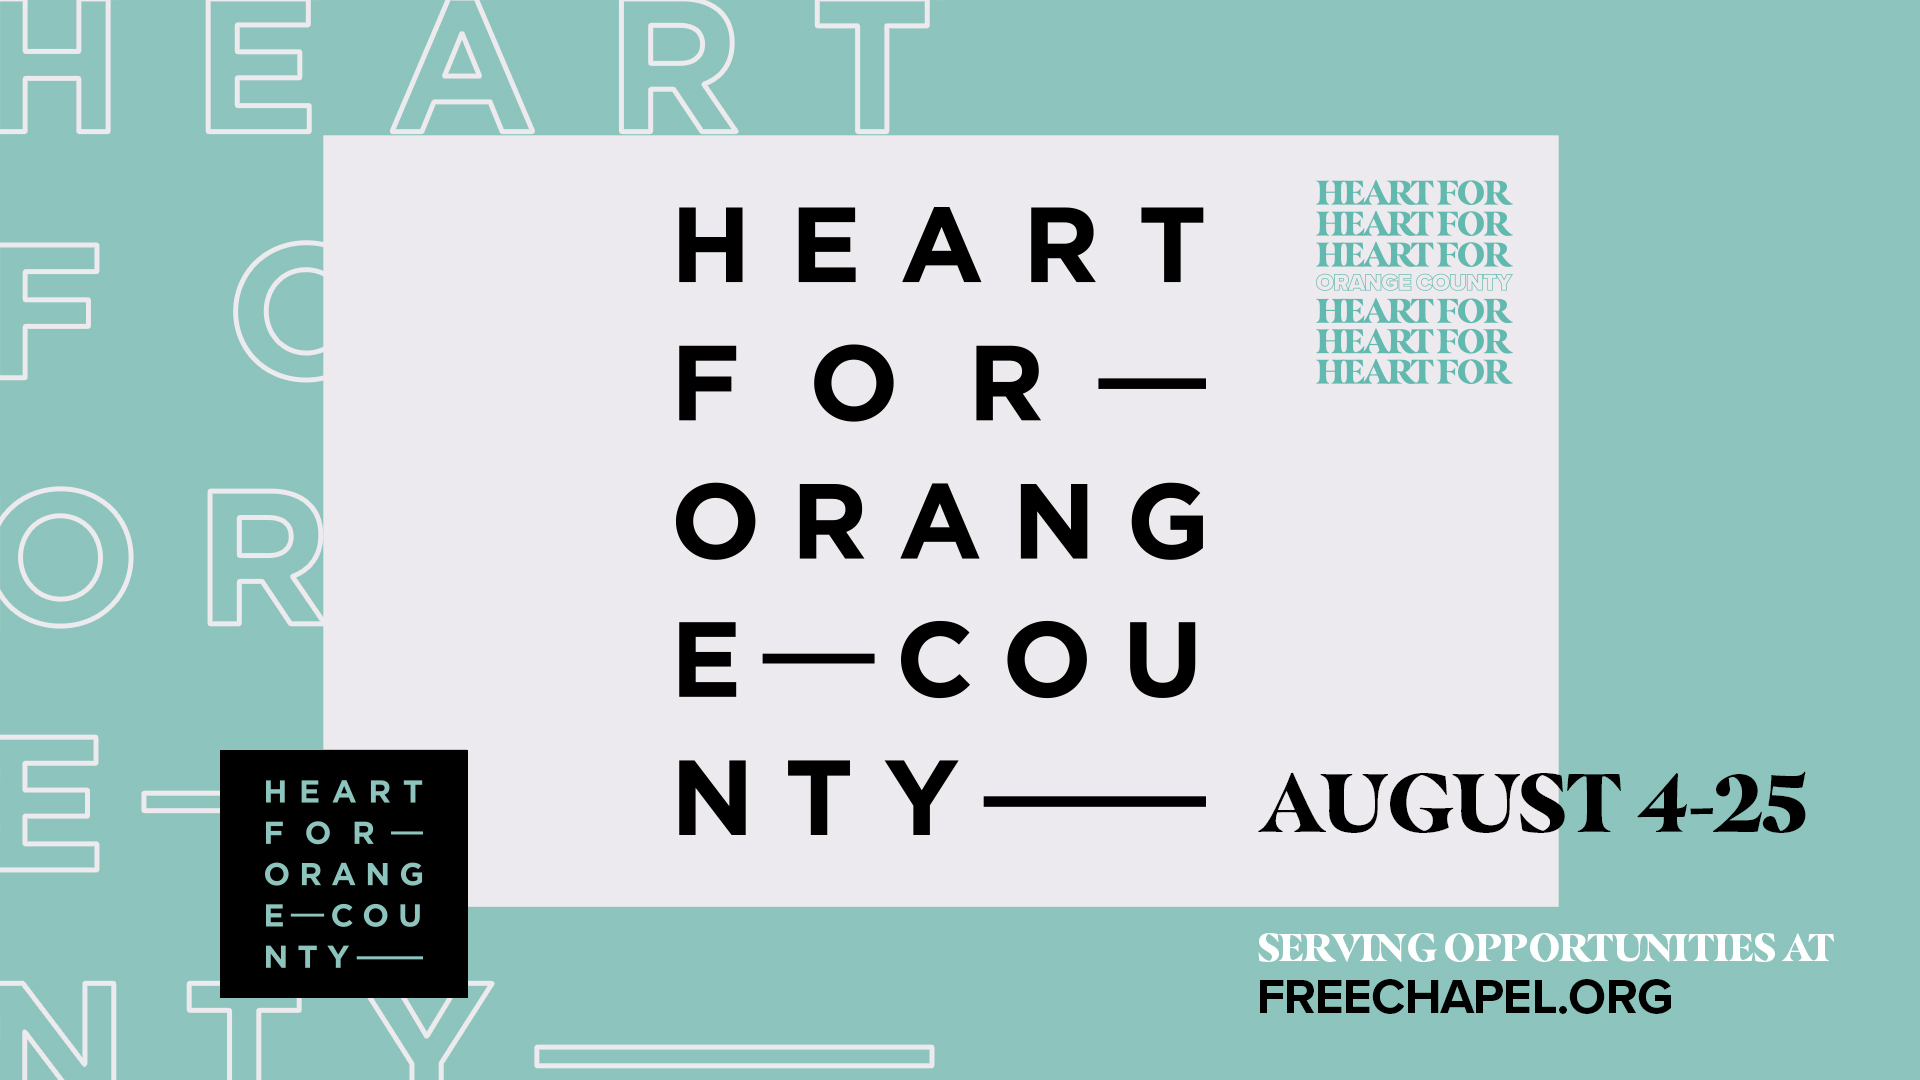 Heart For OC at the Orange County campus